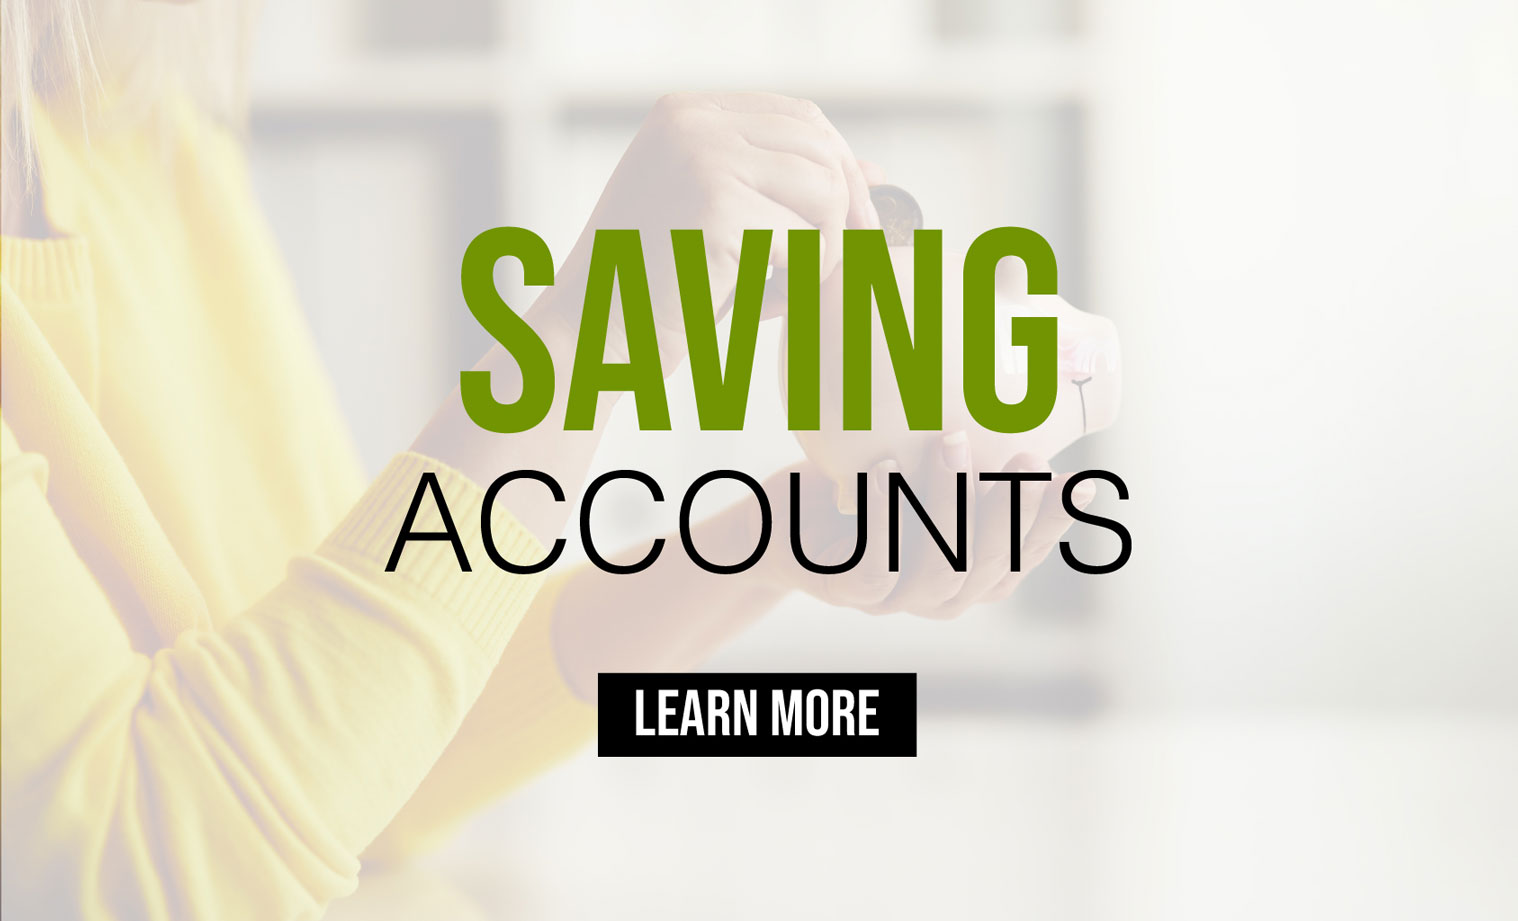 Learn more about Savings Accounts